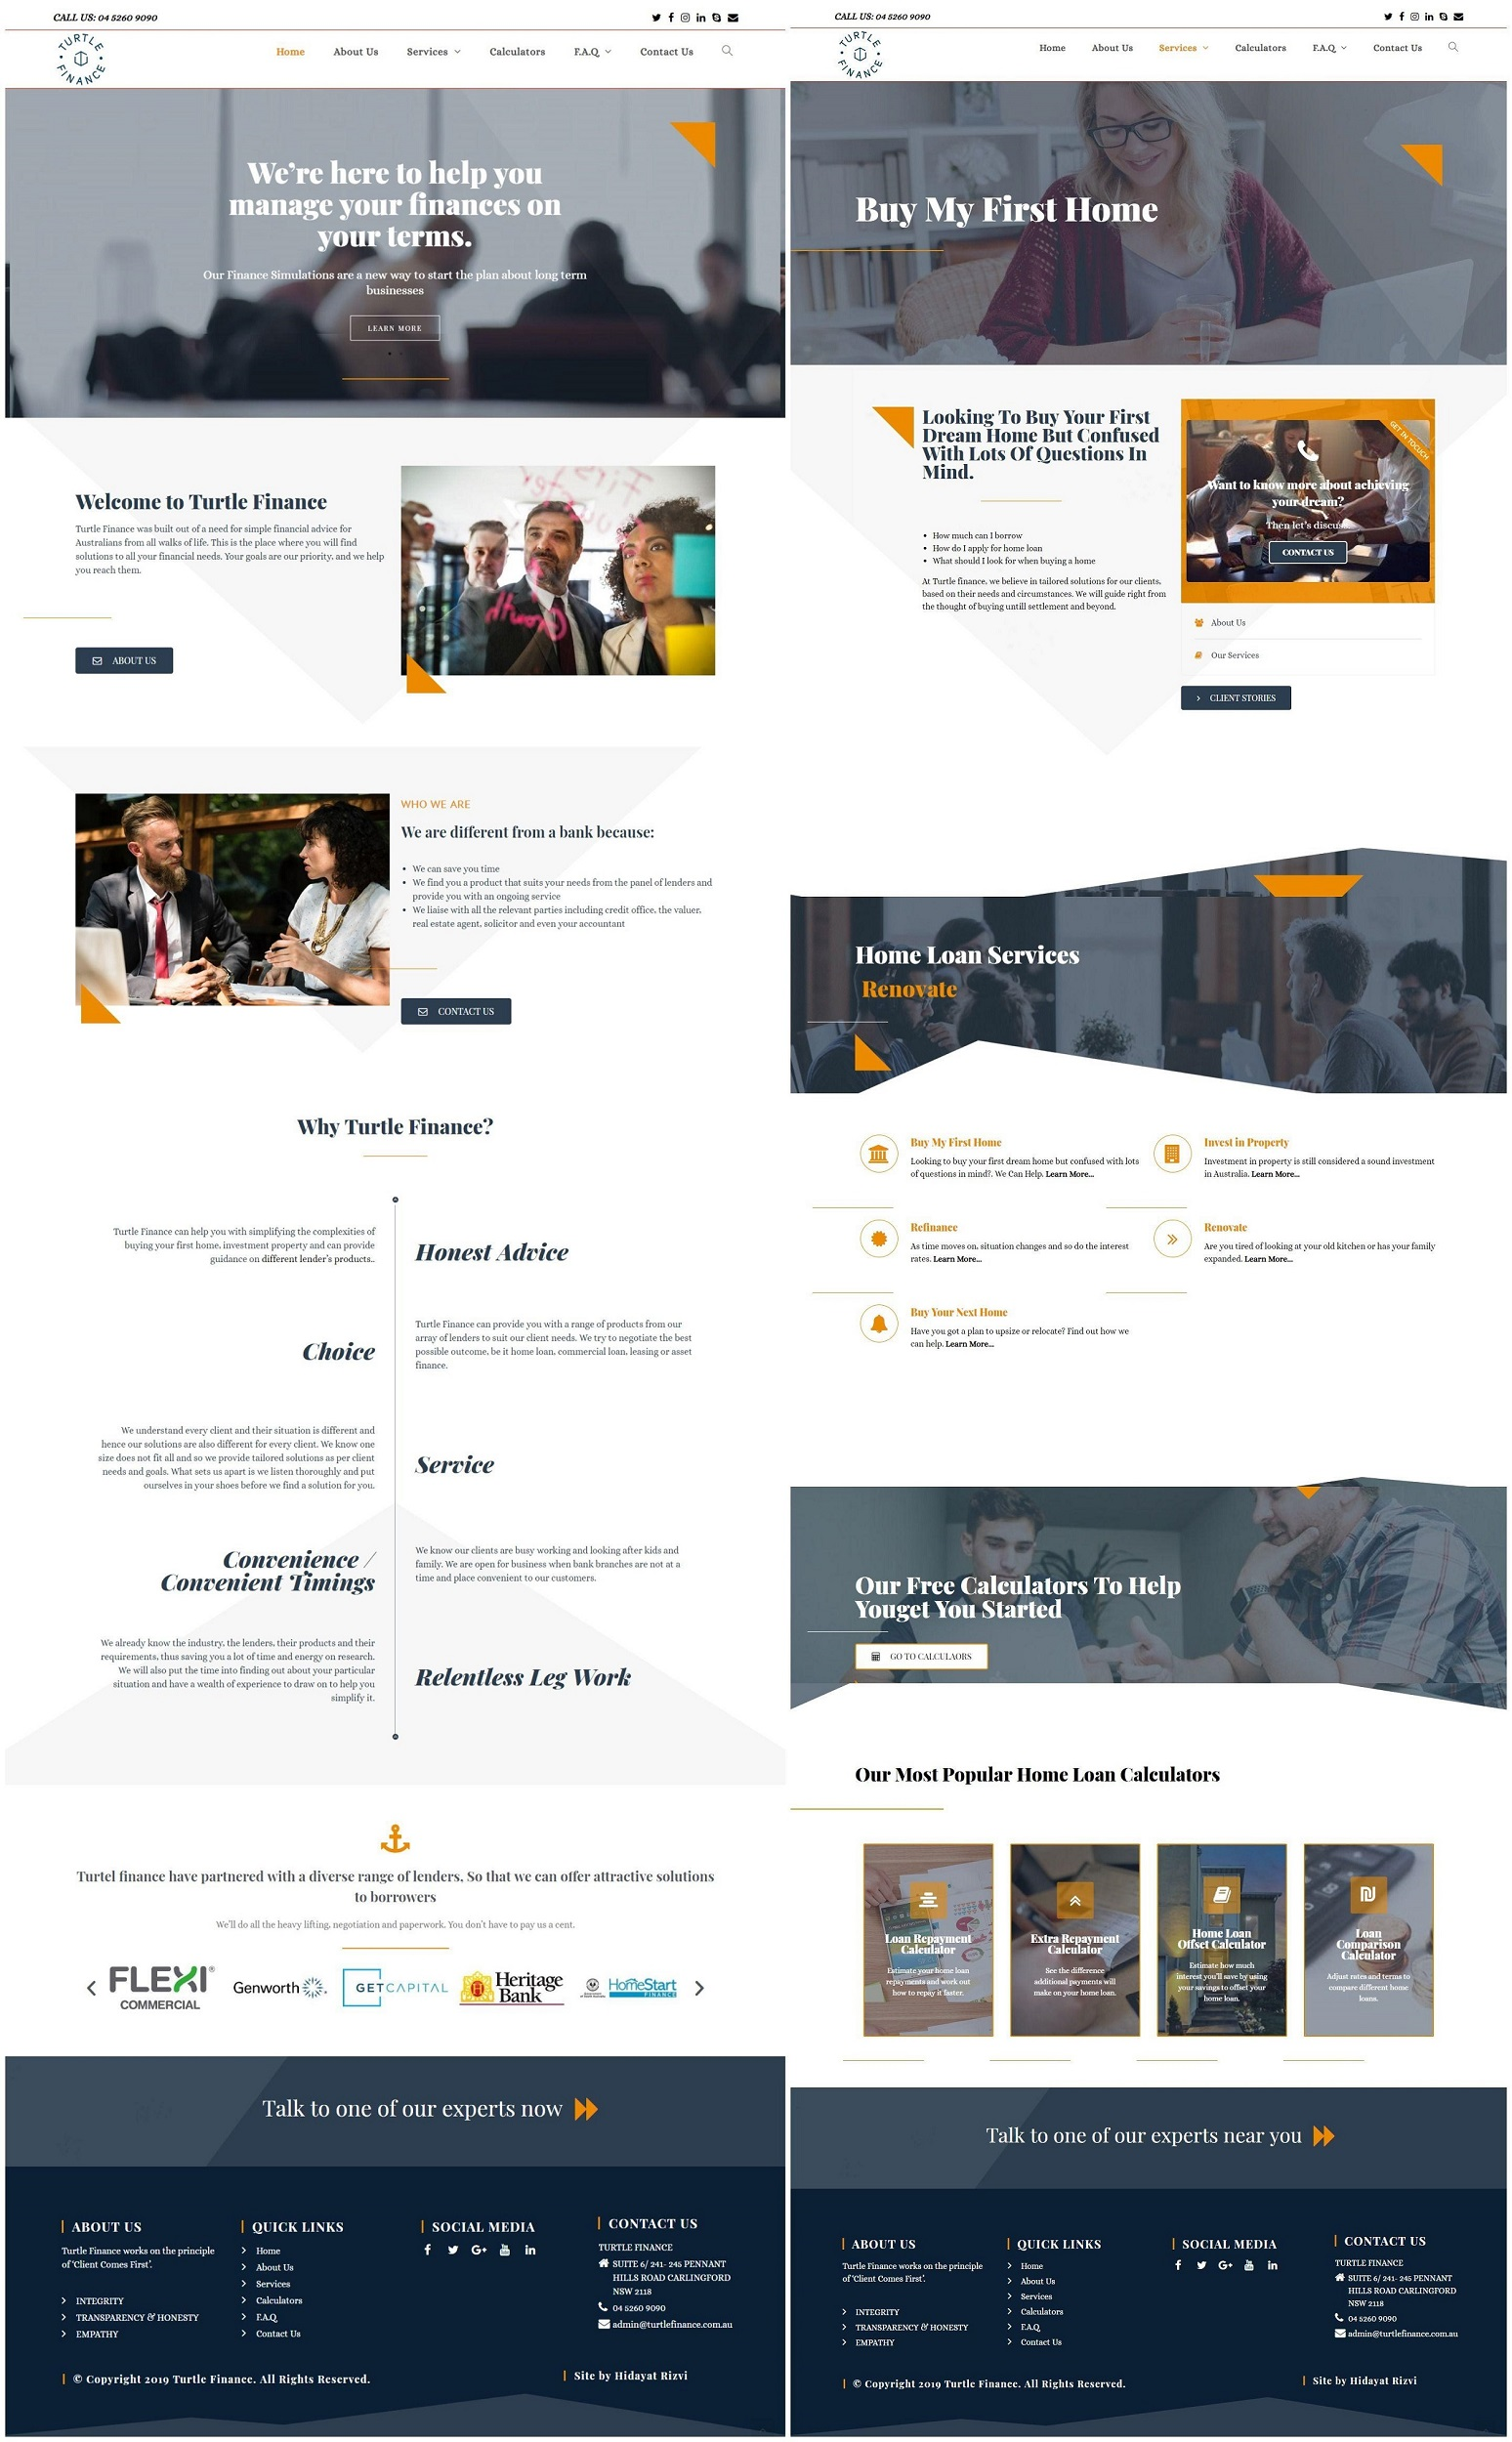 Design convert or redesign in wordpress and SEO with Elementor Pro